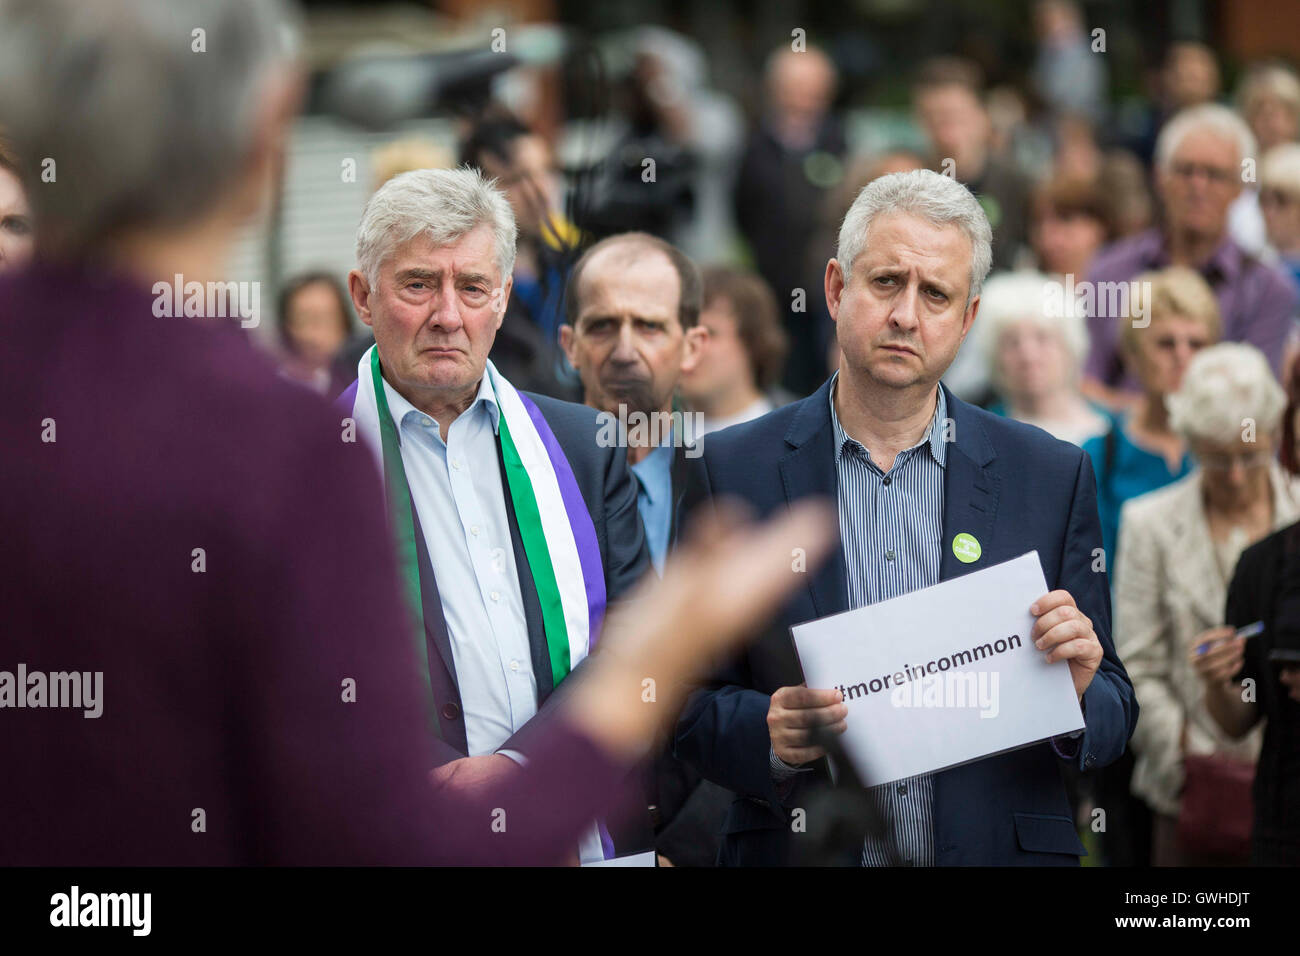 Tony Lloyd (left) , Greater Manchester Police and Crime Commissioner and interim Mayor of Greater Manchester and - Stock Image